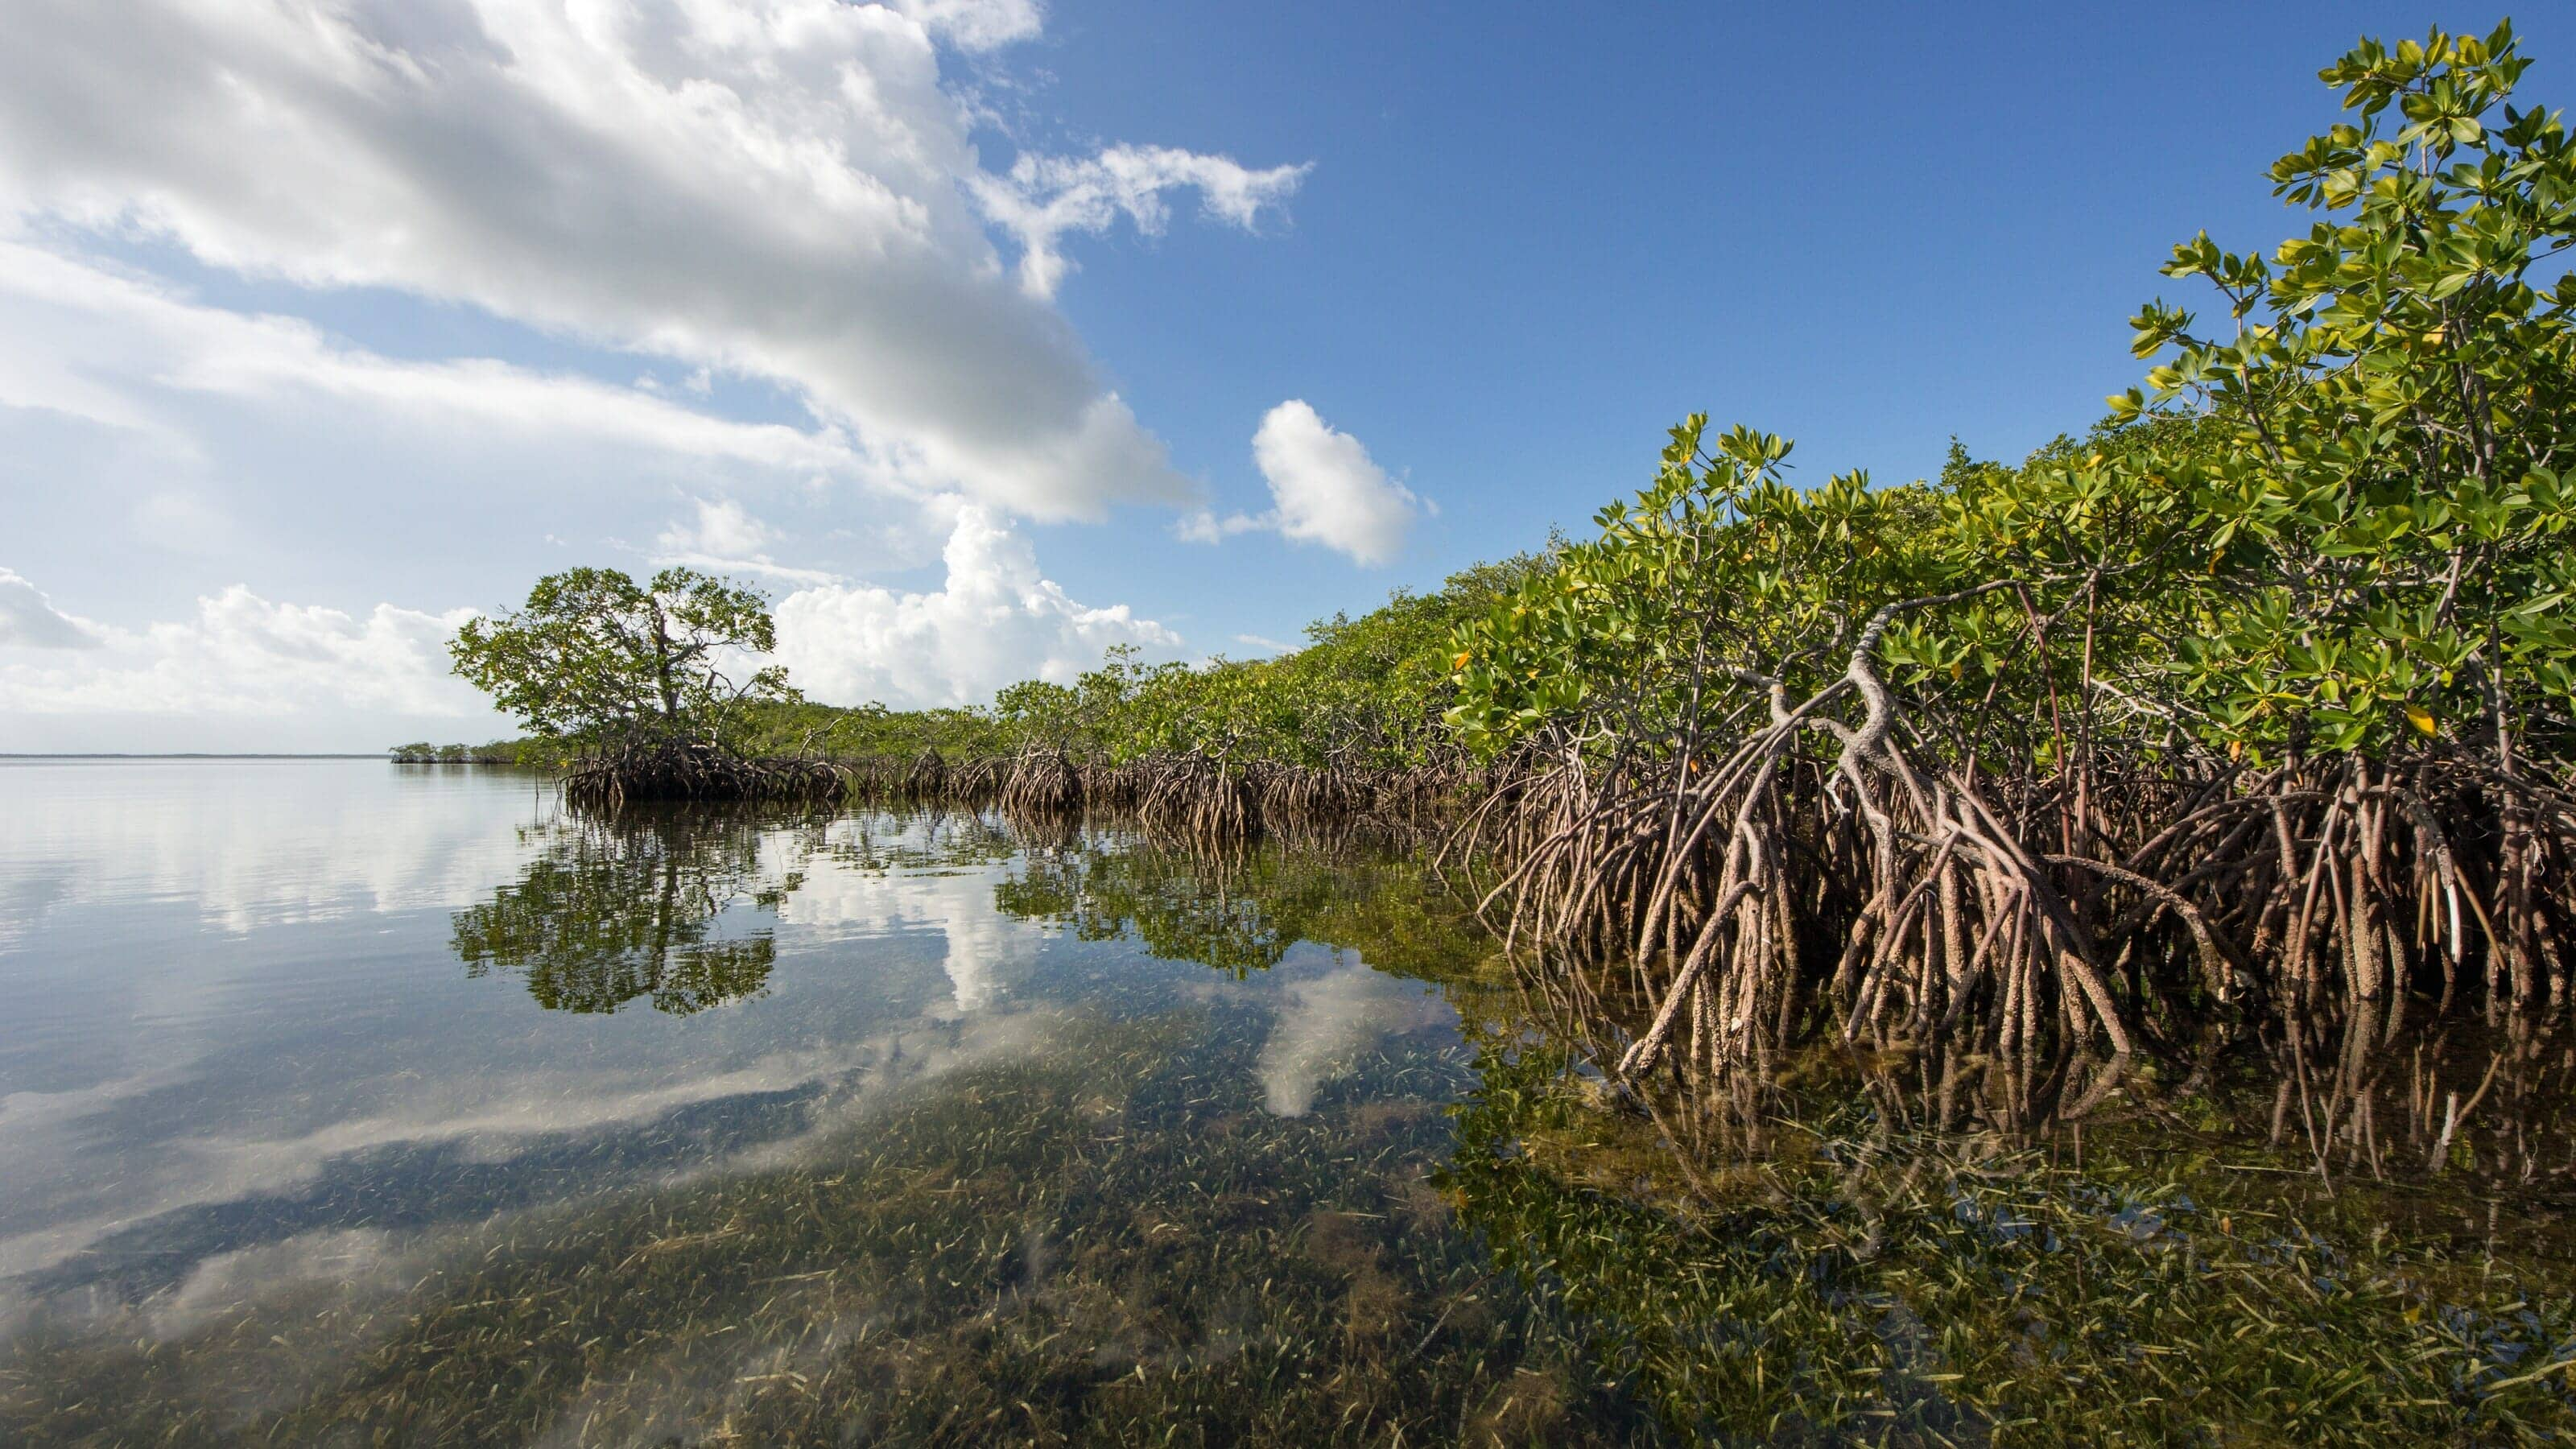 Mangroves in Biscayne Bay